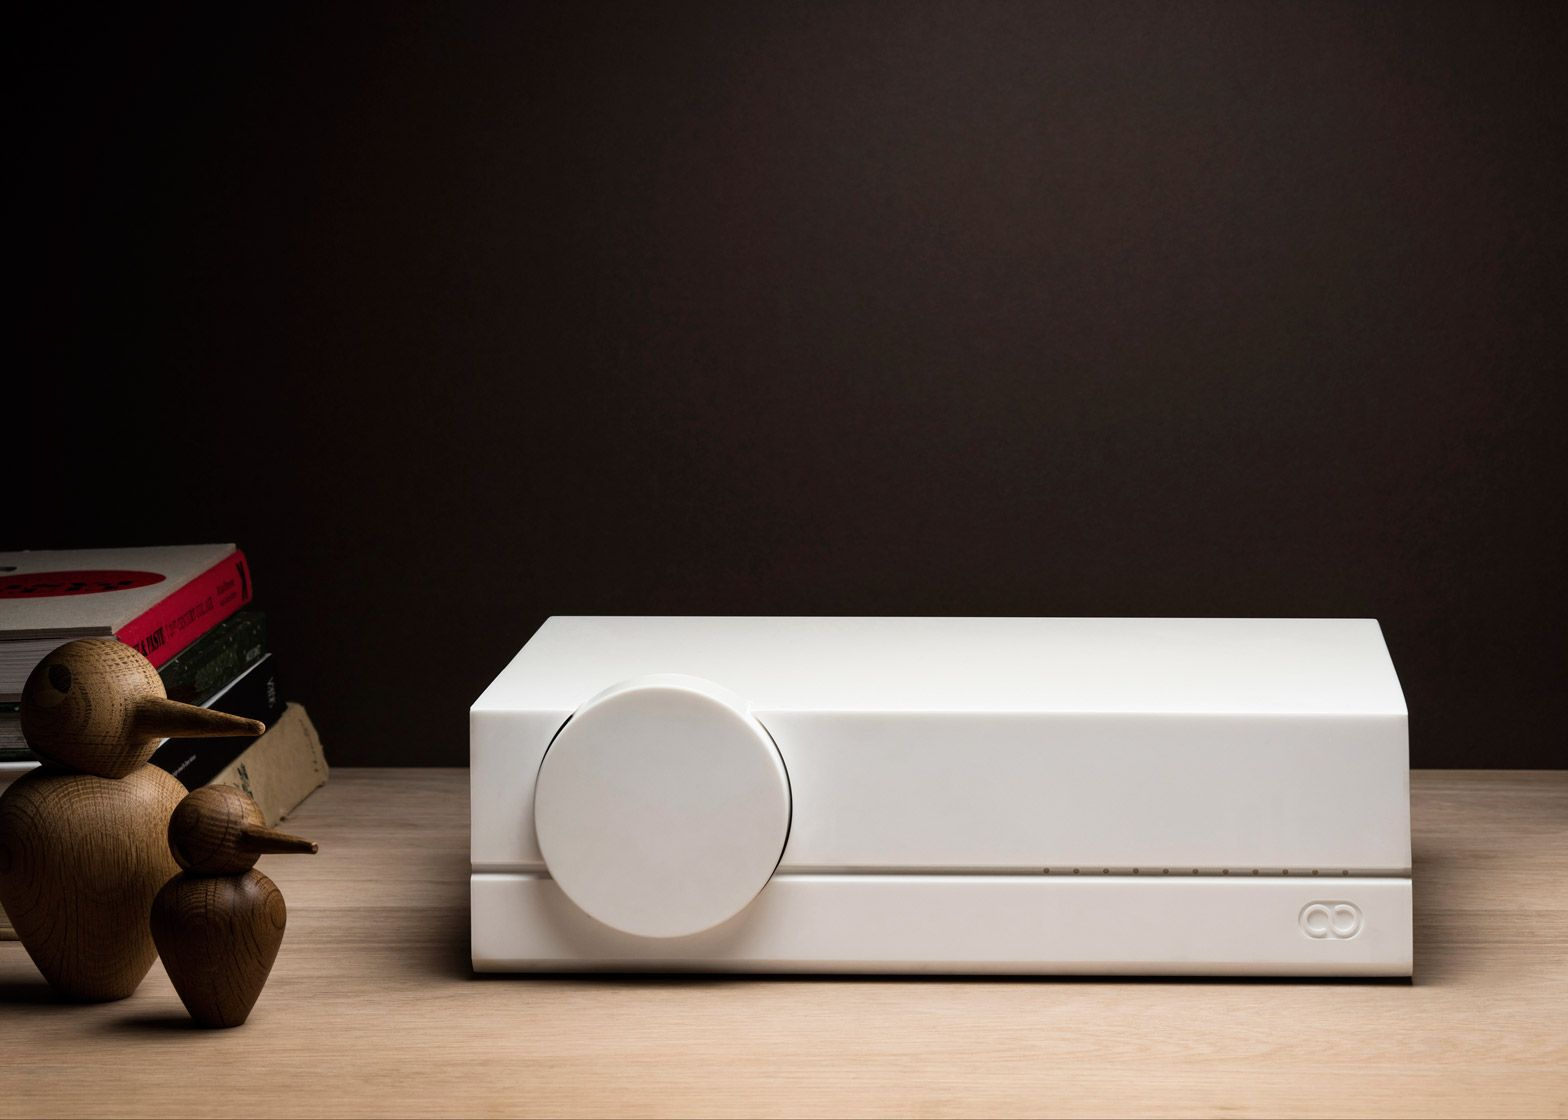 Tiny Home Designs: Paul Crofts Designs Minimal White Junior Amp For